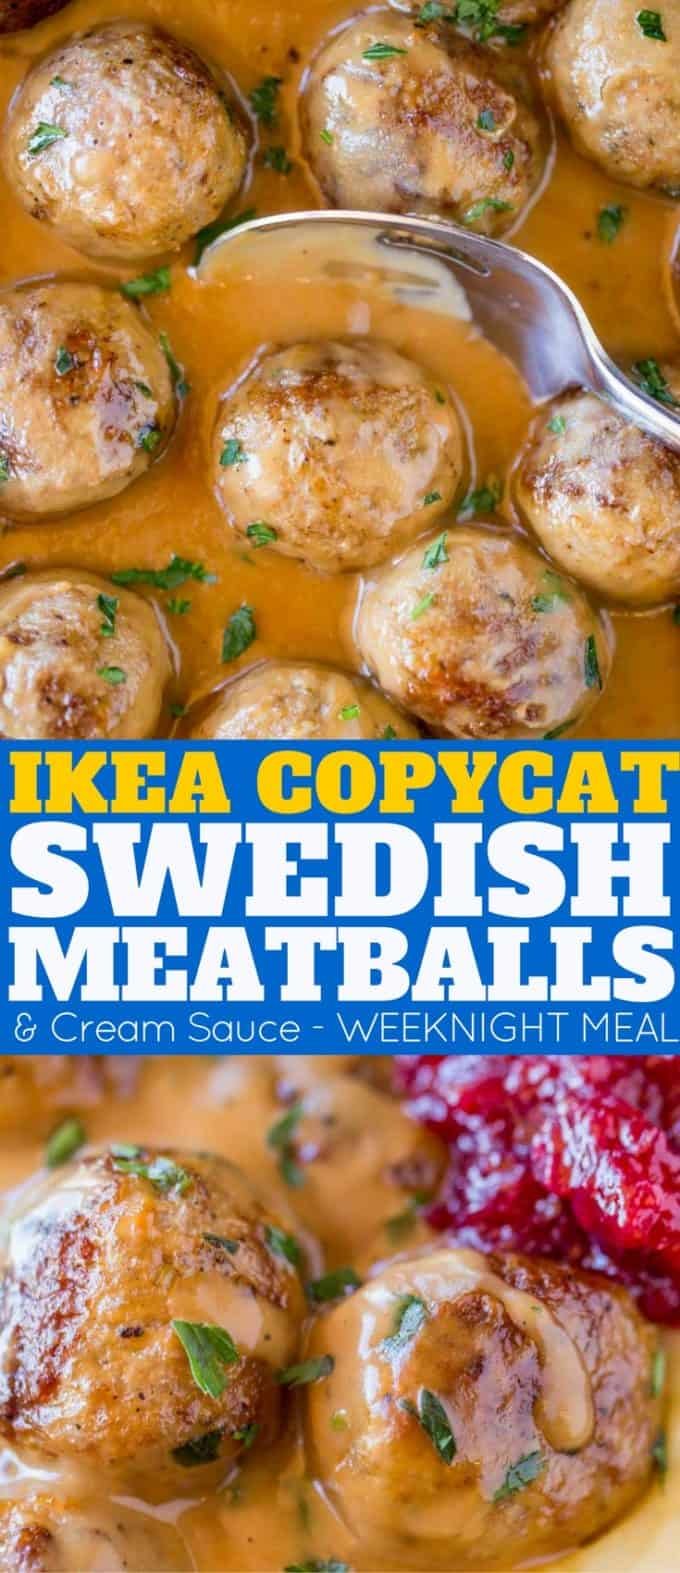 We love these Swedish Meatballs as much as the Ikea Meatballs they're a copycat of!